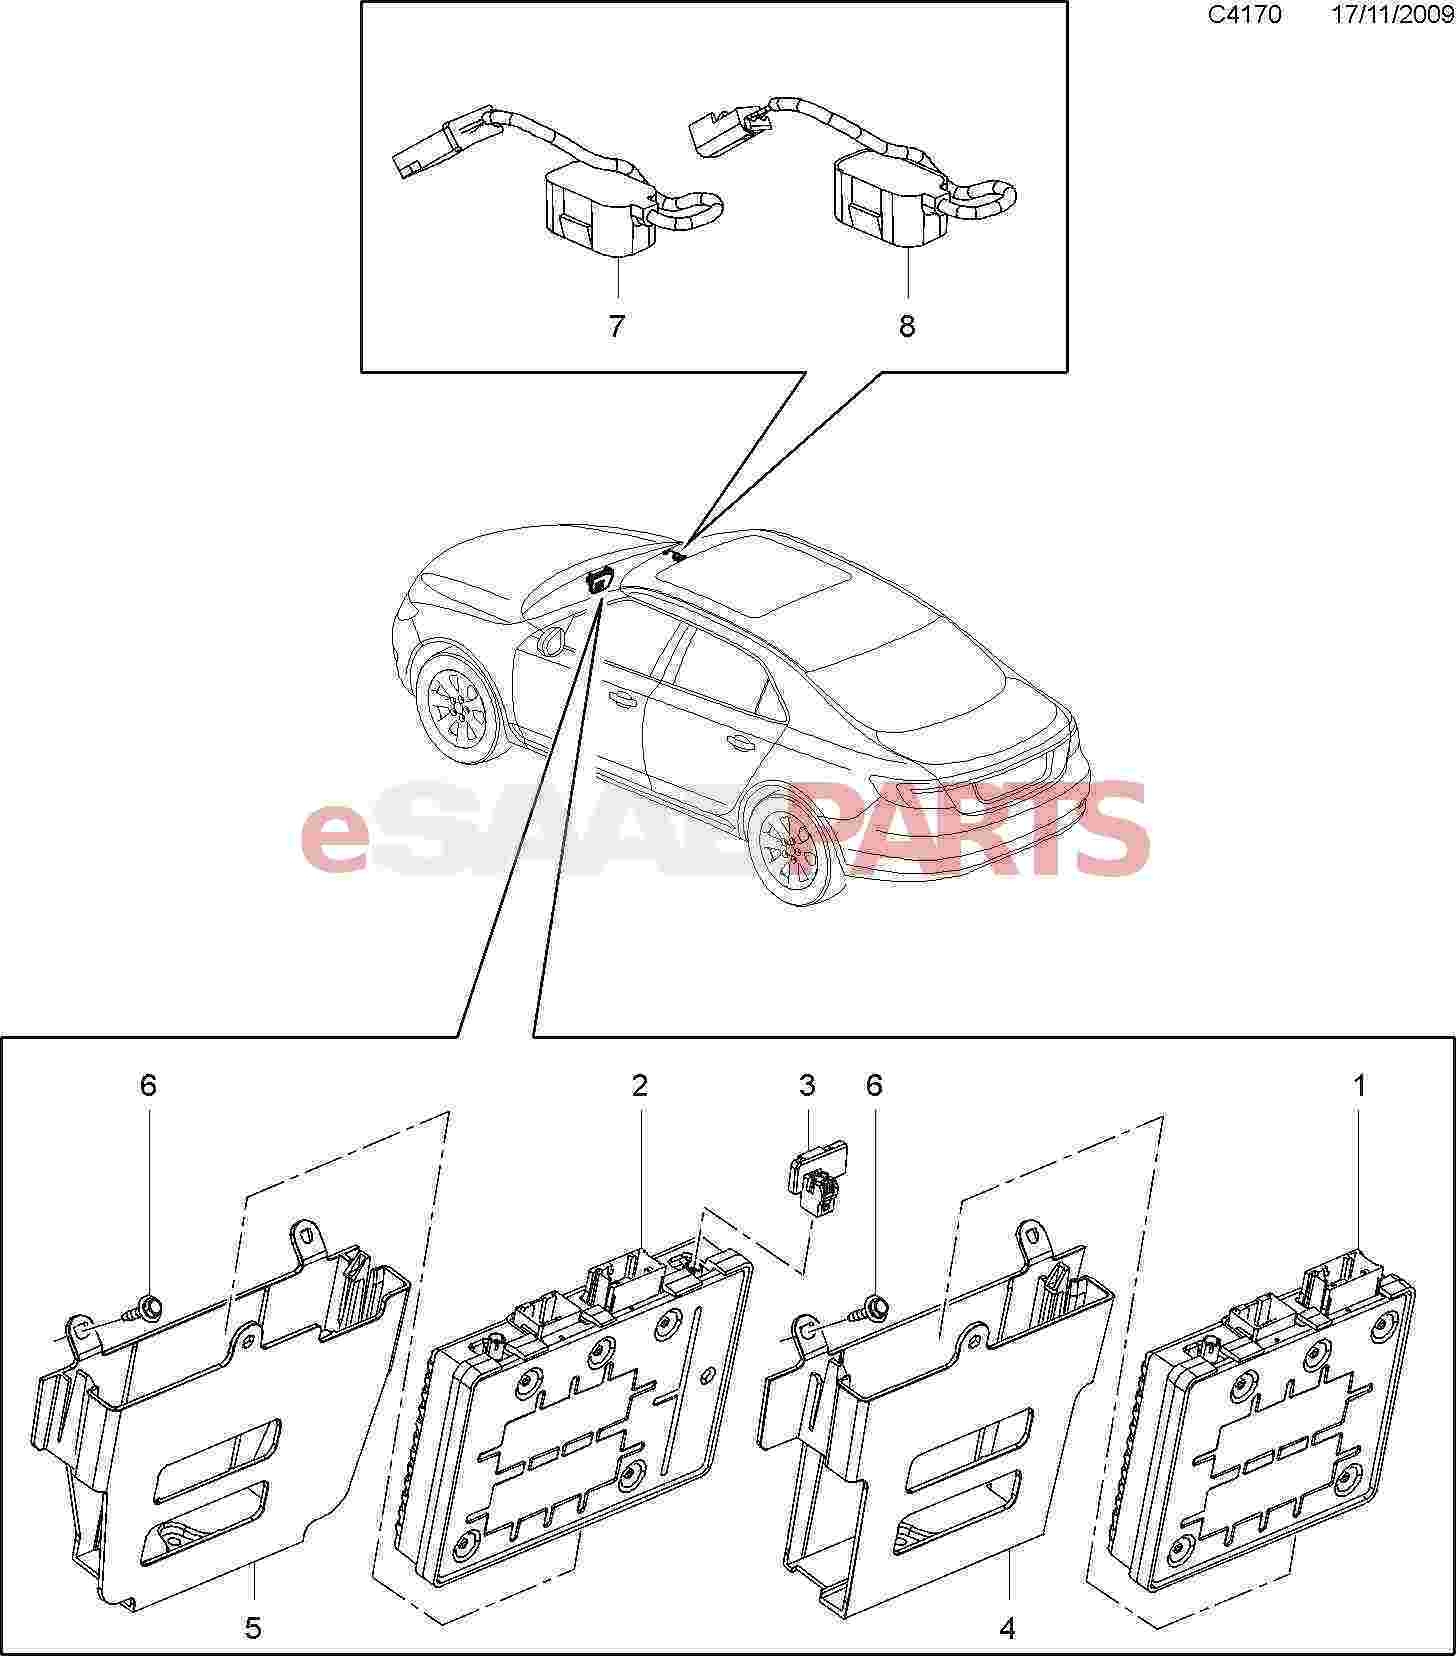 [15938939] SAAB Bluetooth Wireless Communication Antenna